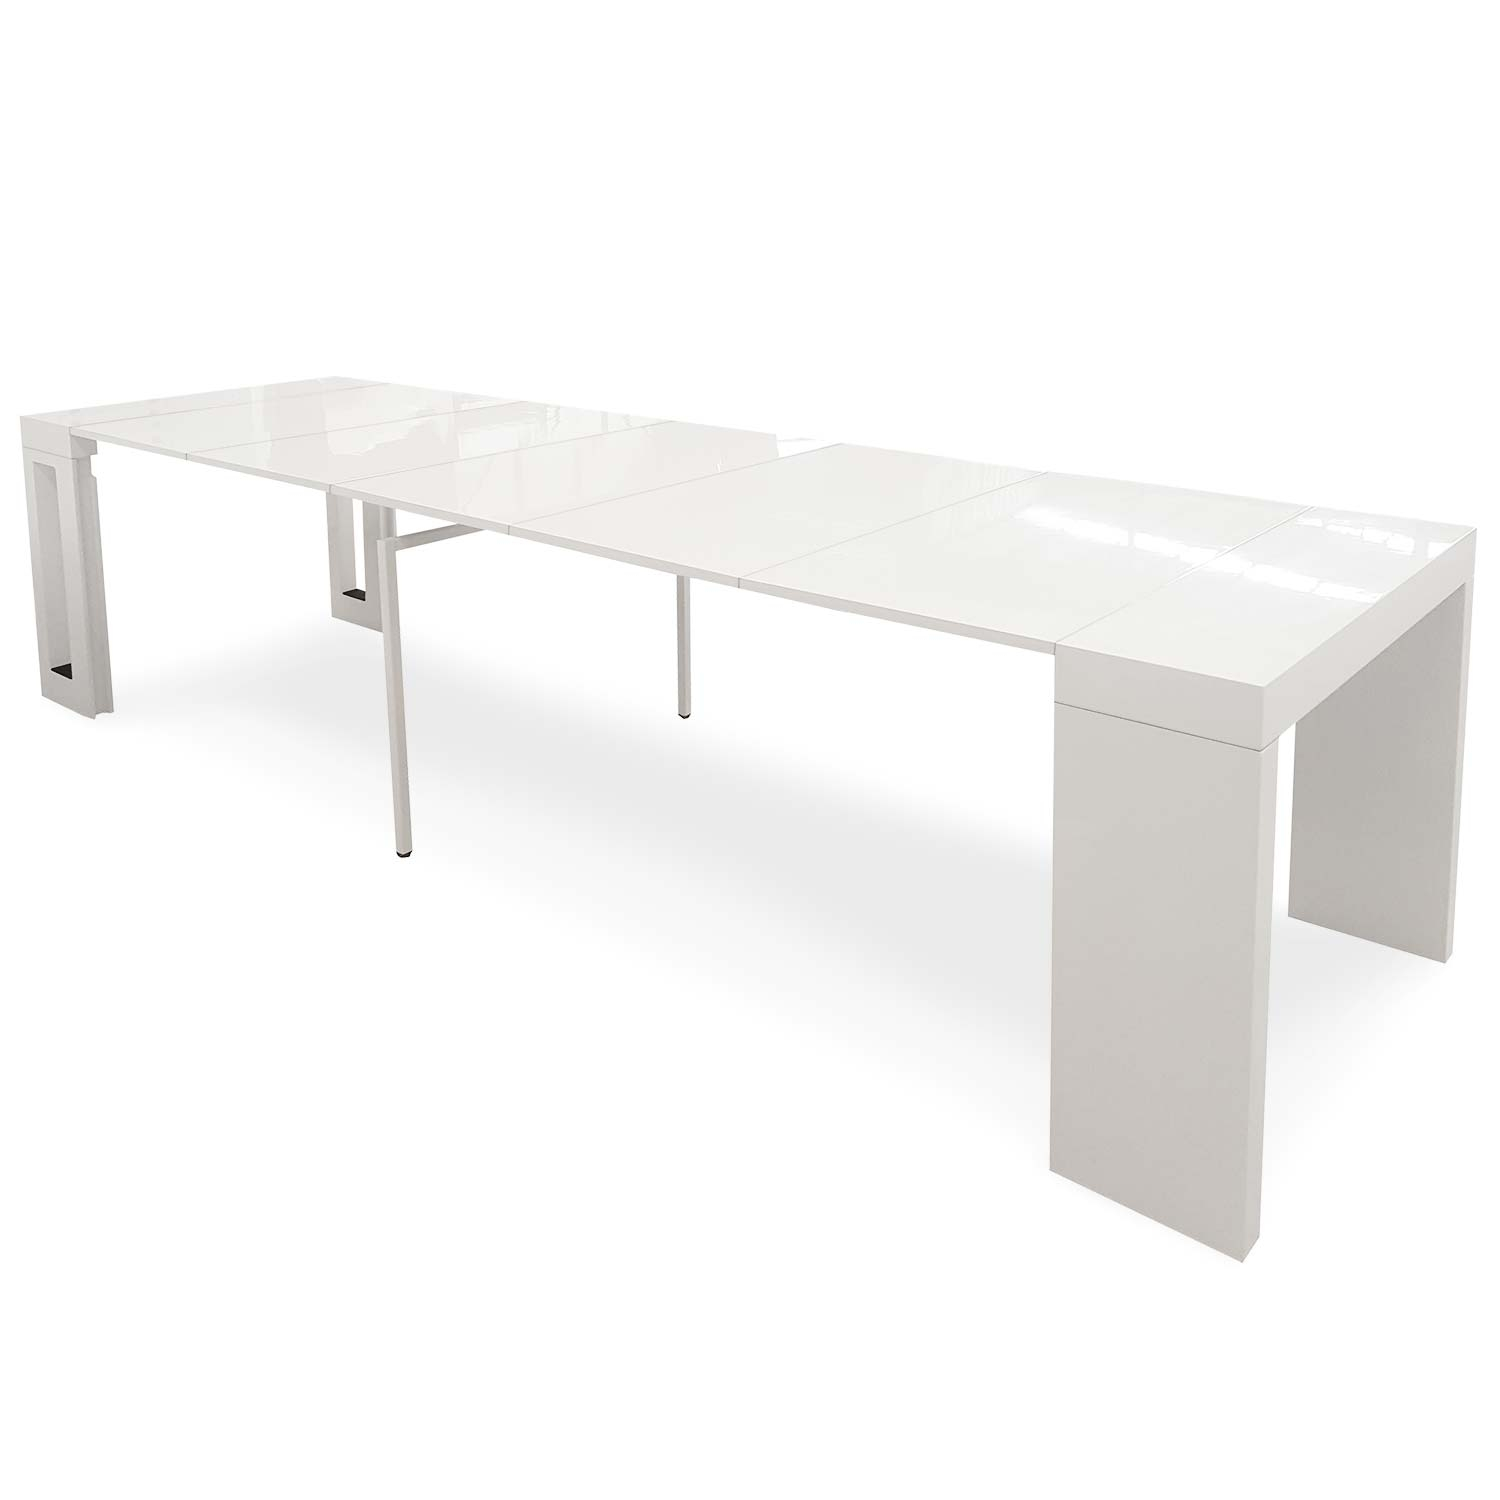 Table console extensible Chay Blanc laqué